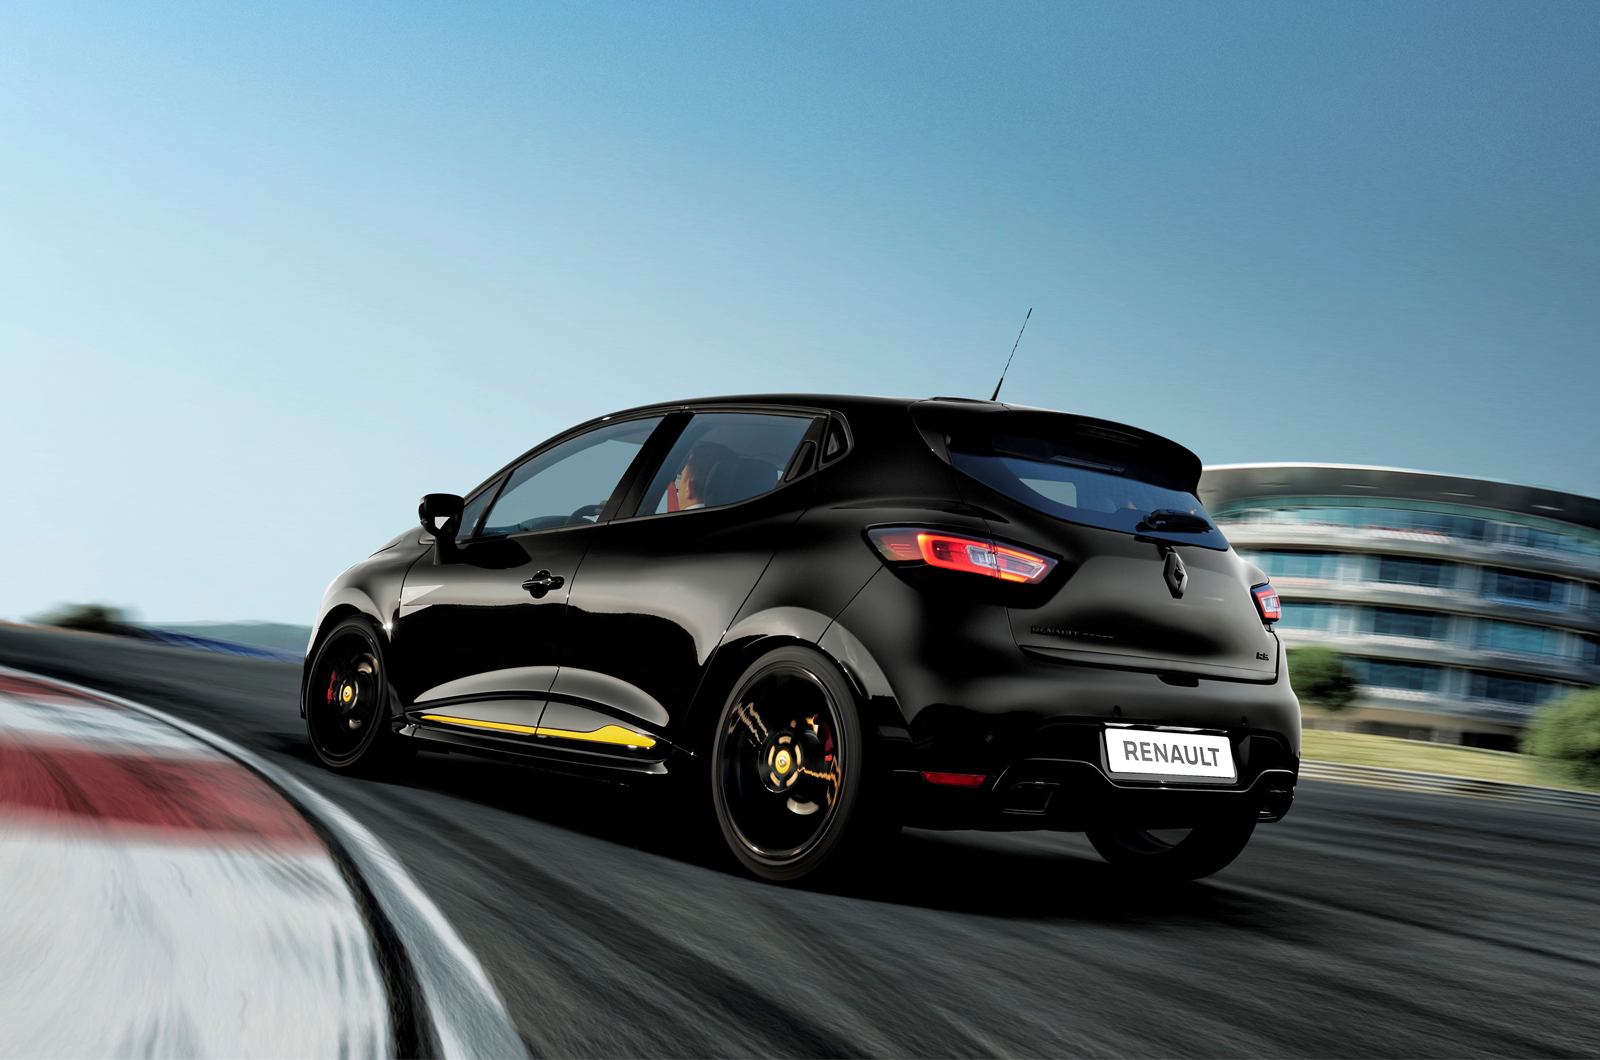 Limited Run Renault Clio Rs 18 Launched With 220 Trophy Chassis Autocar